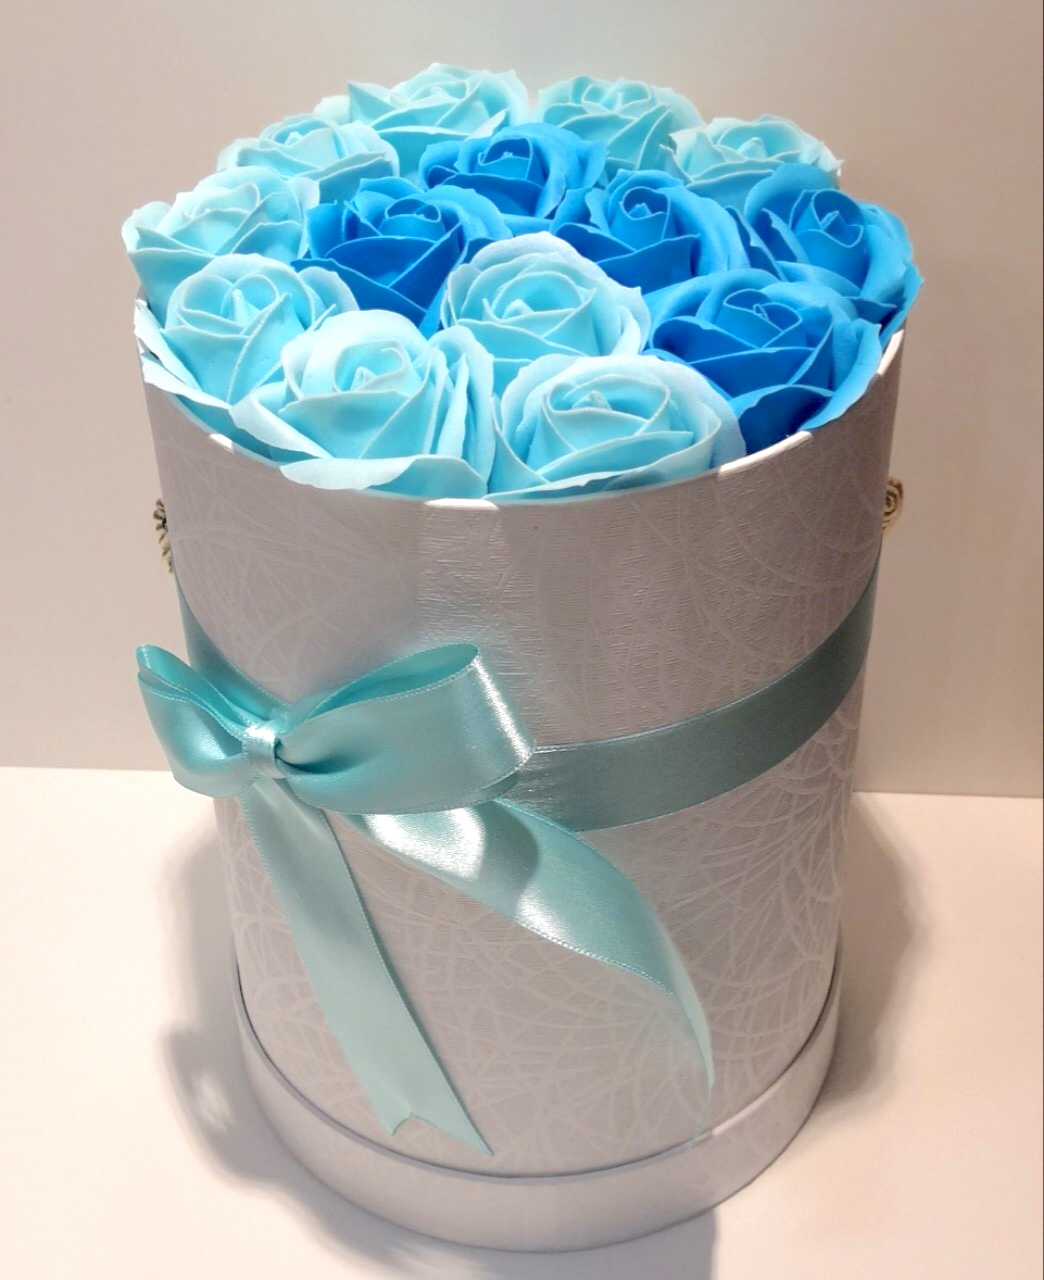 Flower Box - Blue roses